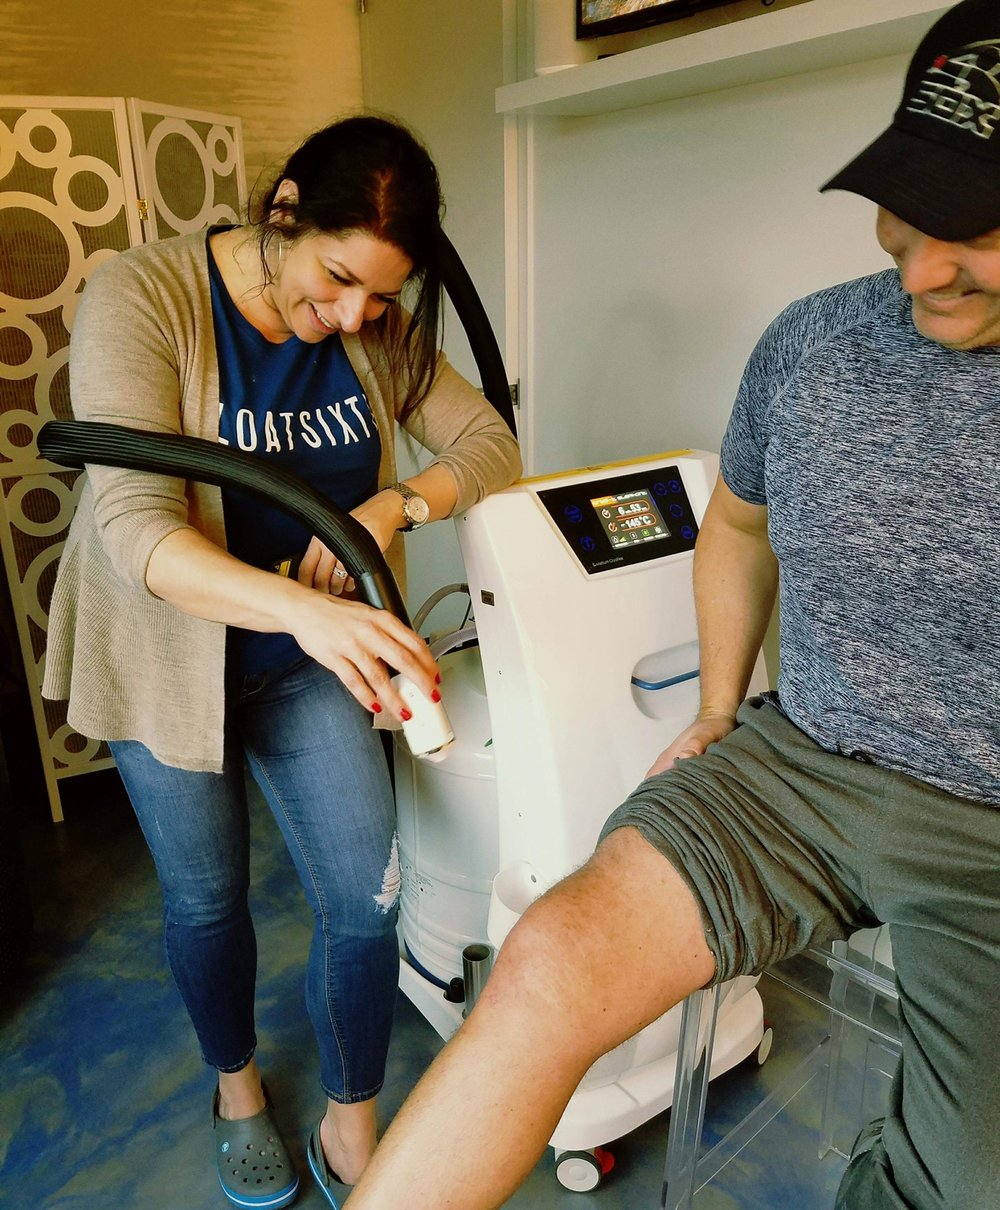 LOCAL CRYOTHERAPY - While whole body cryotherapy is applied to the entire body, localized cryotherapy focuses on the specific areas of your skin. Local cryotherapy is used to target localized areas that are in pain or inflamed to cold temperatures between -240°F to -256°F for about 5 - 10 minutes per location.Localized cryotherapy is used to minimize pain, promote healing, treat wounds and swelling, as well as for skin rejuvenation. We also have reports of headache alleviation. This type of cryotherapy can be applied to any specific injured part of the body such as ankles, shoulders, feet, elbows, knees, and necks.